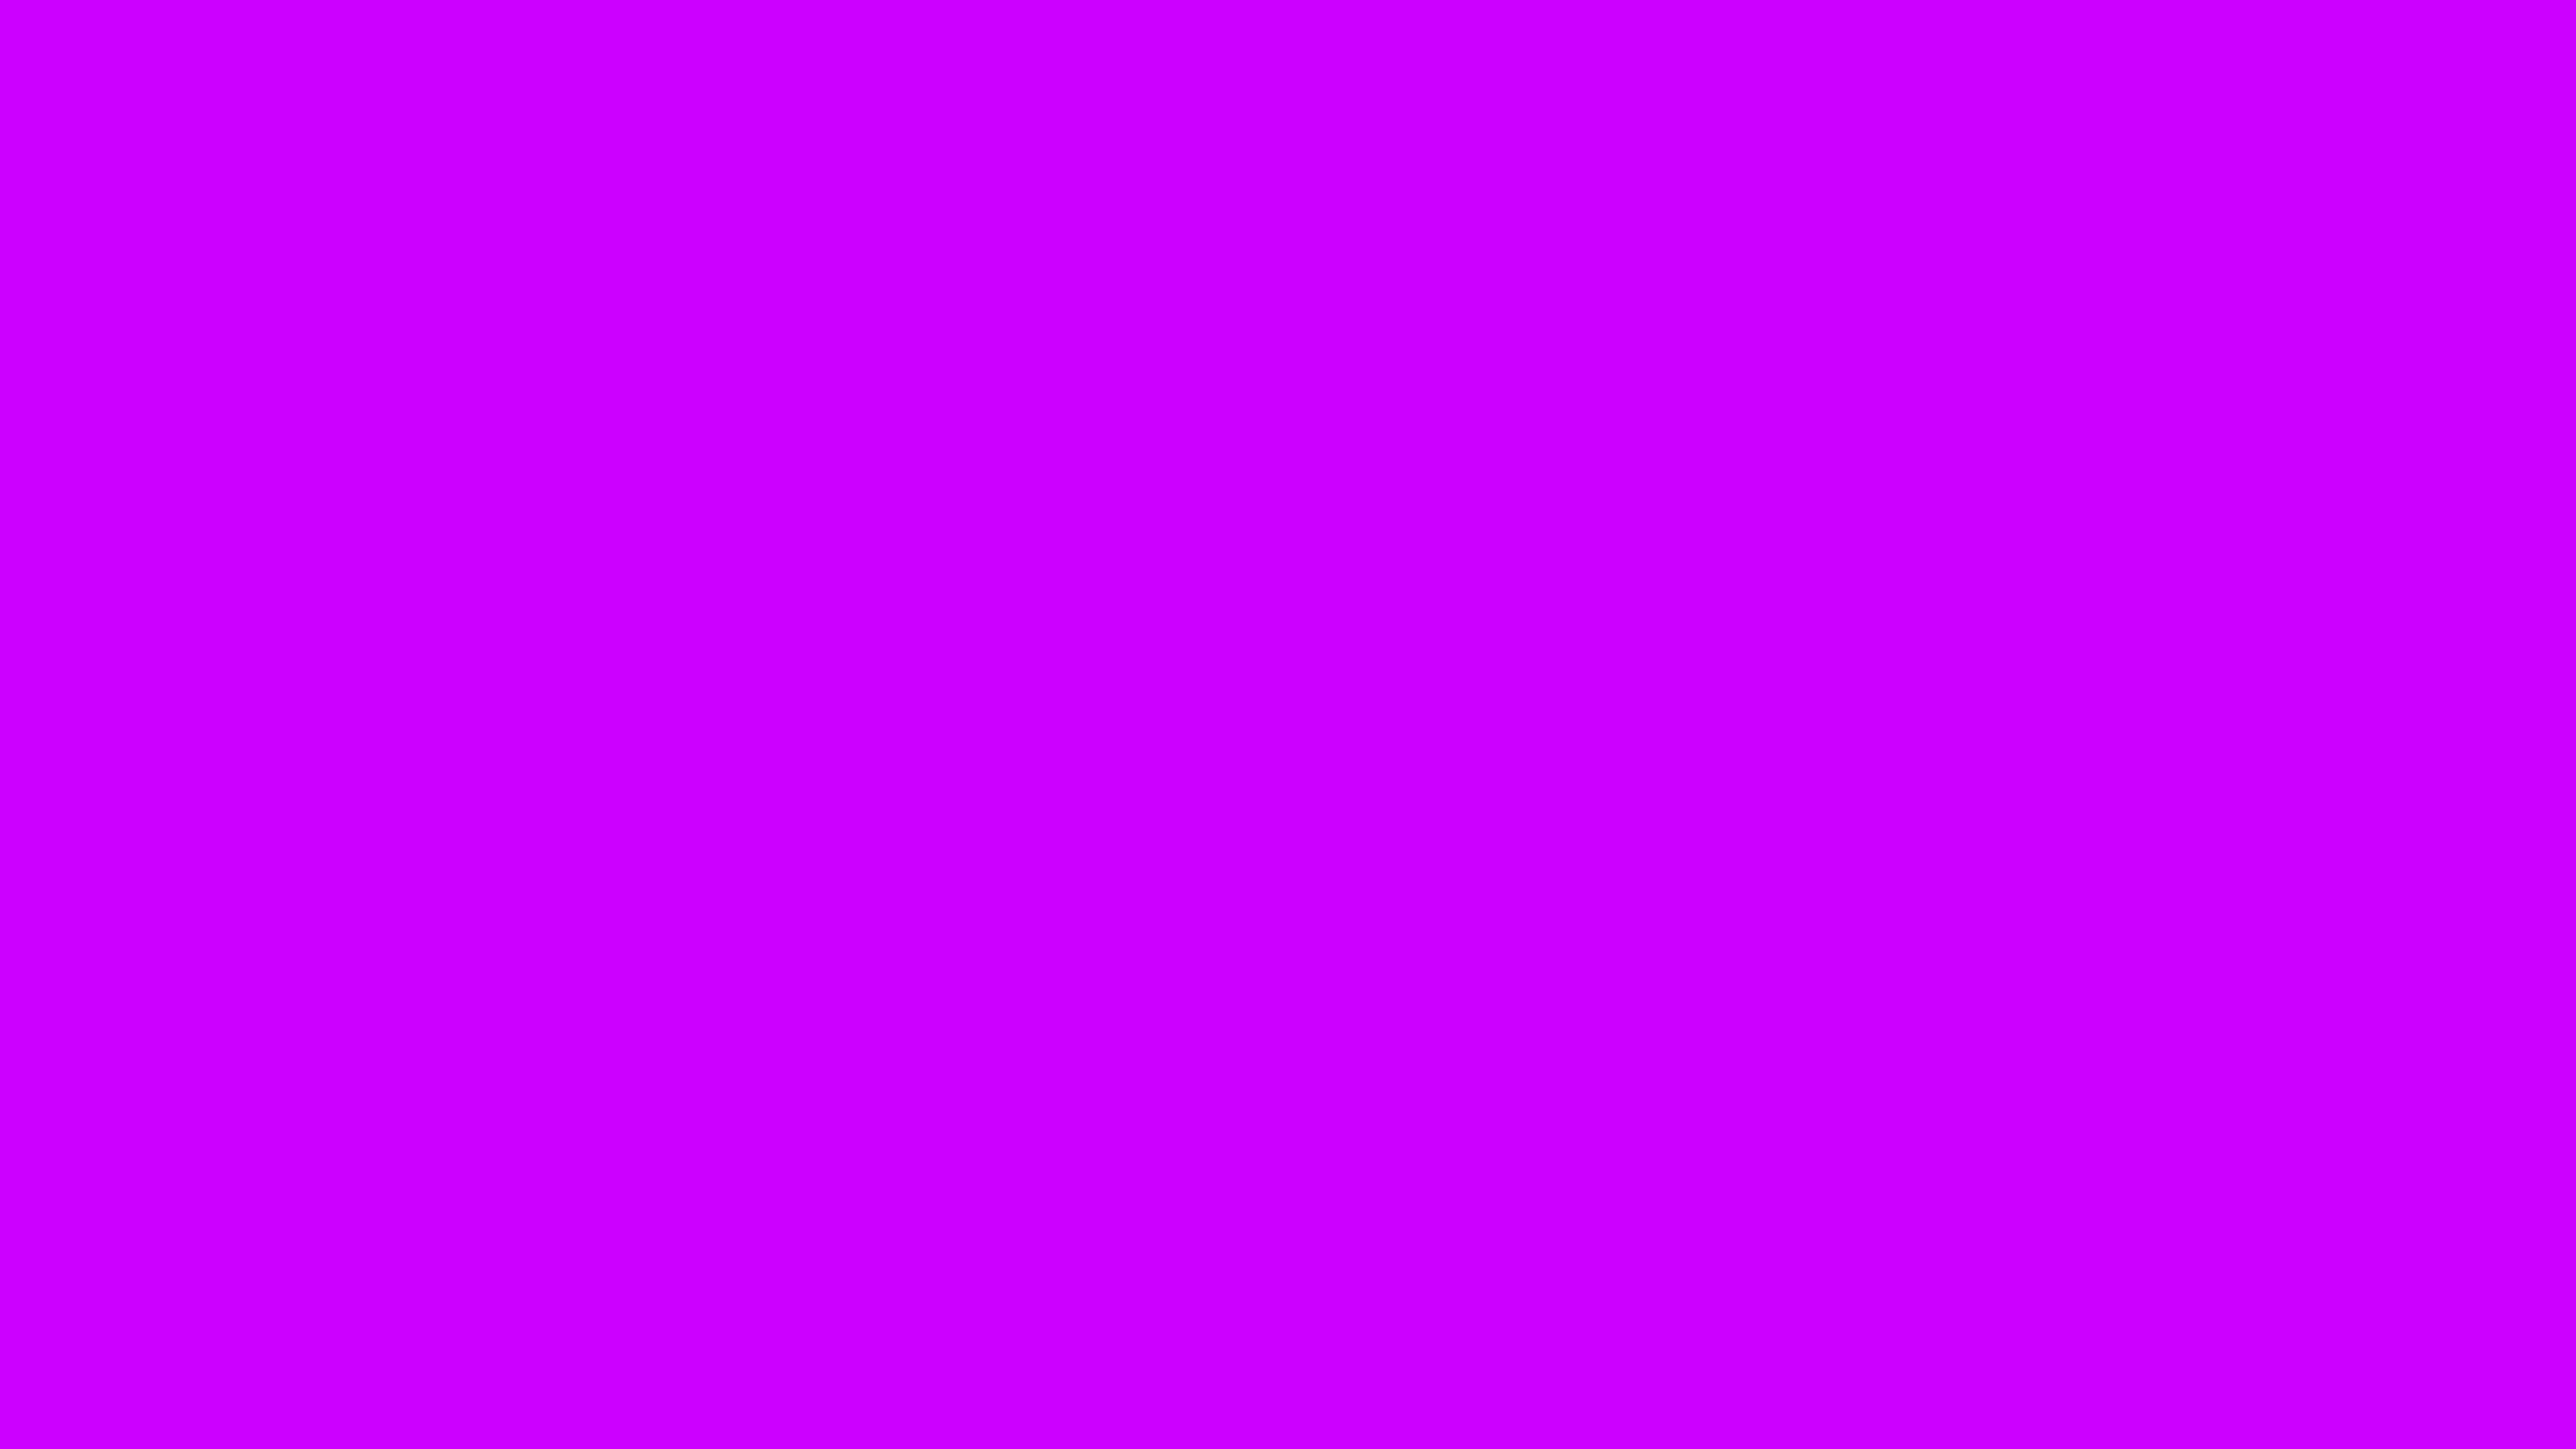 4096x2304 Vivid Orchid Solid Color Background